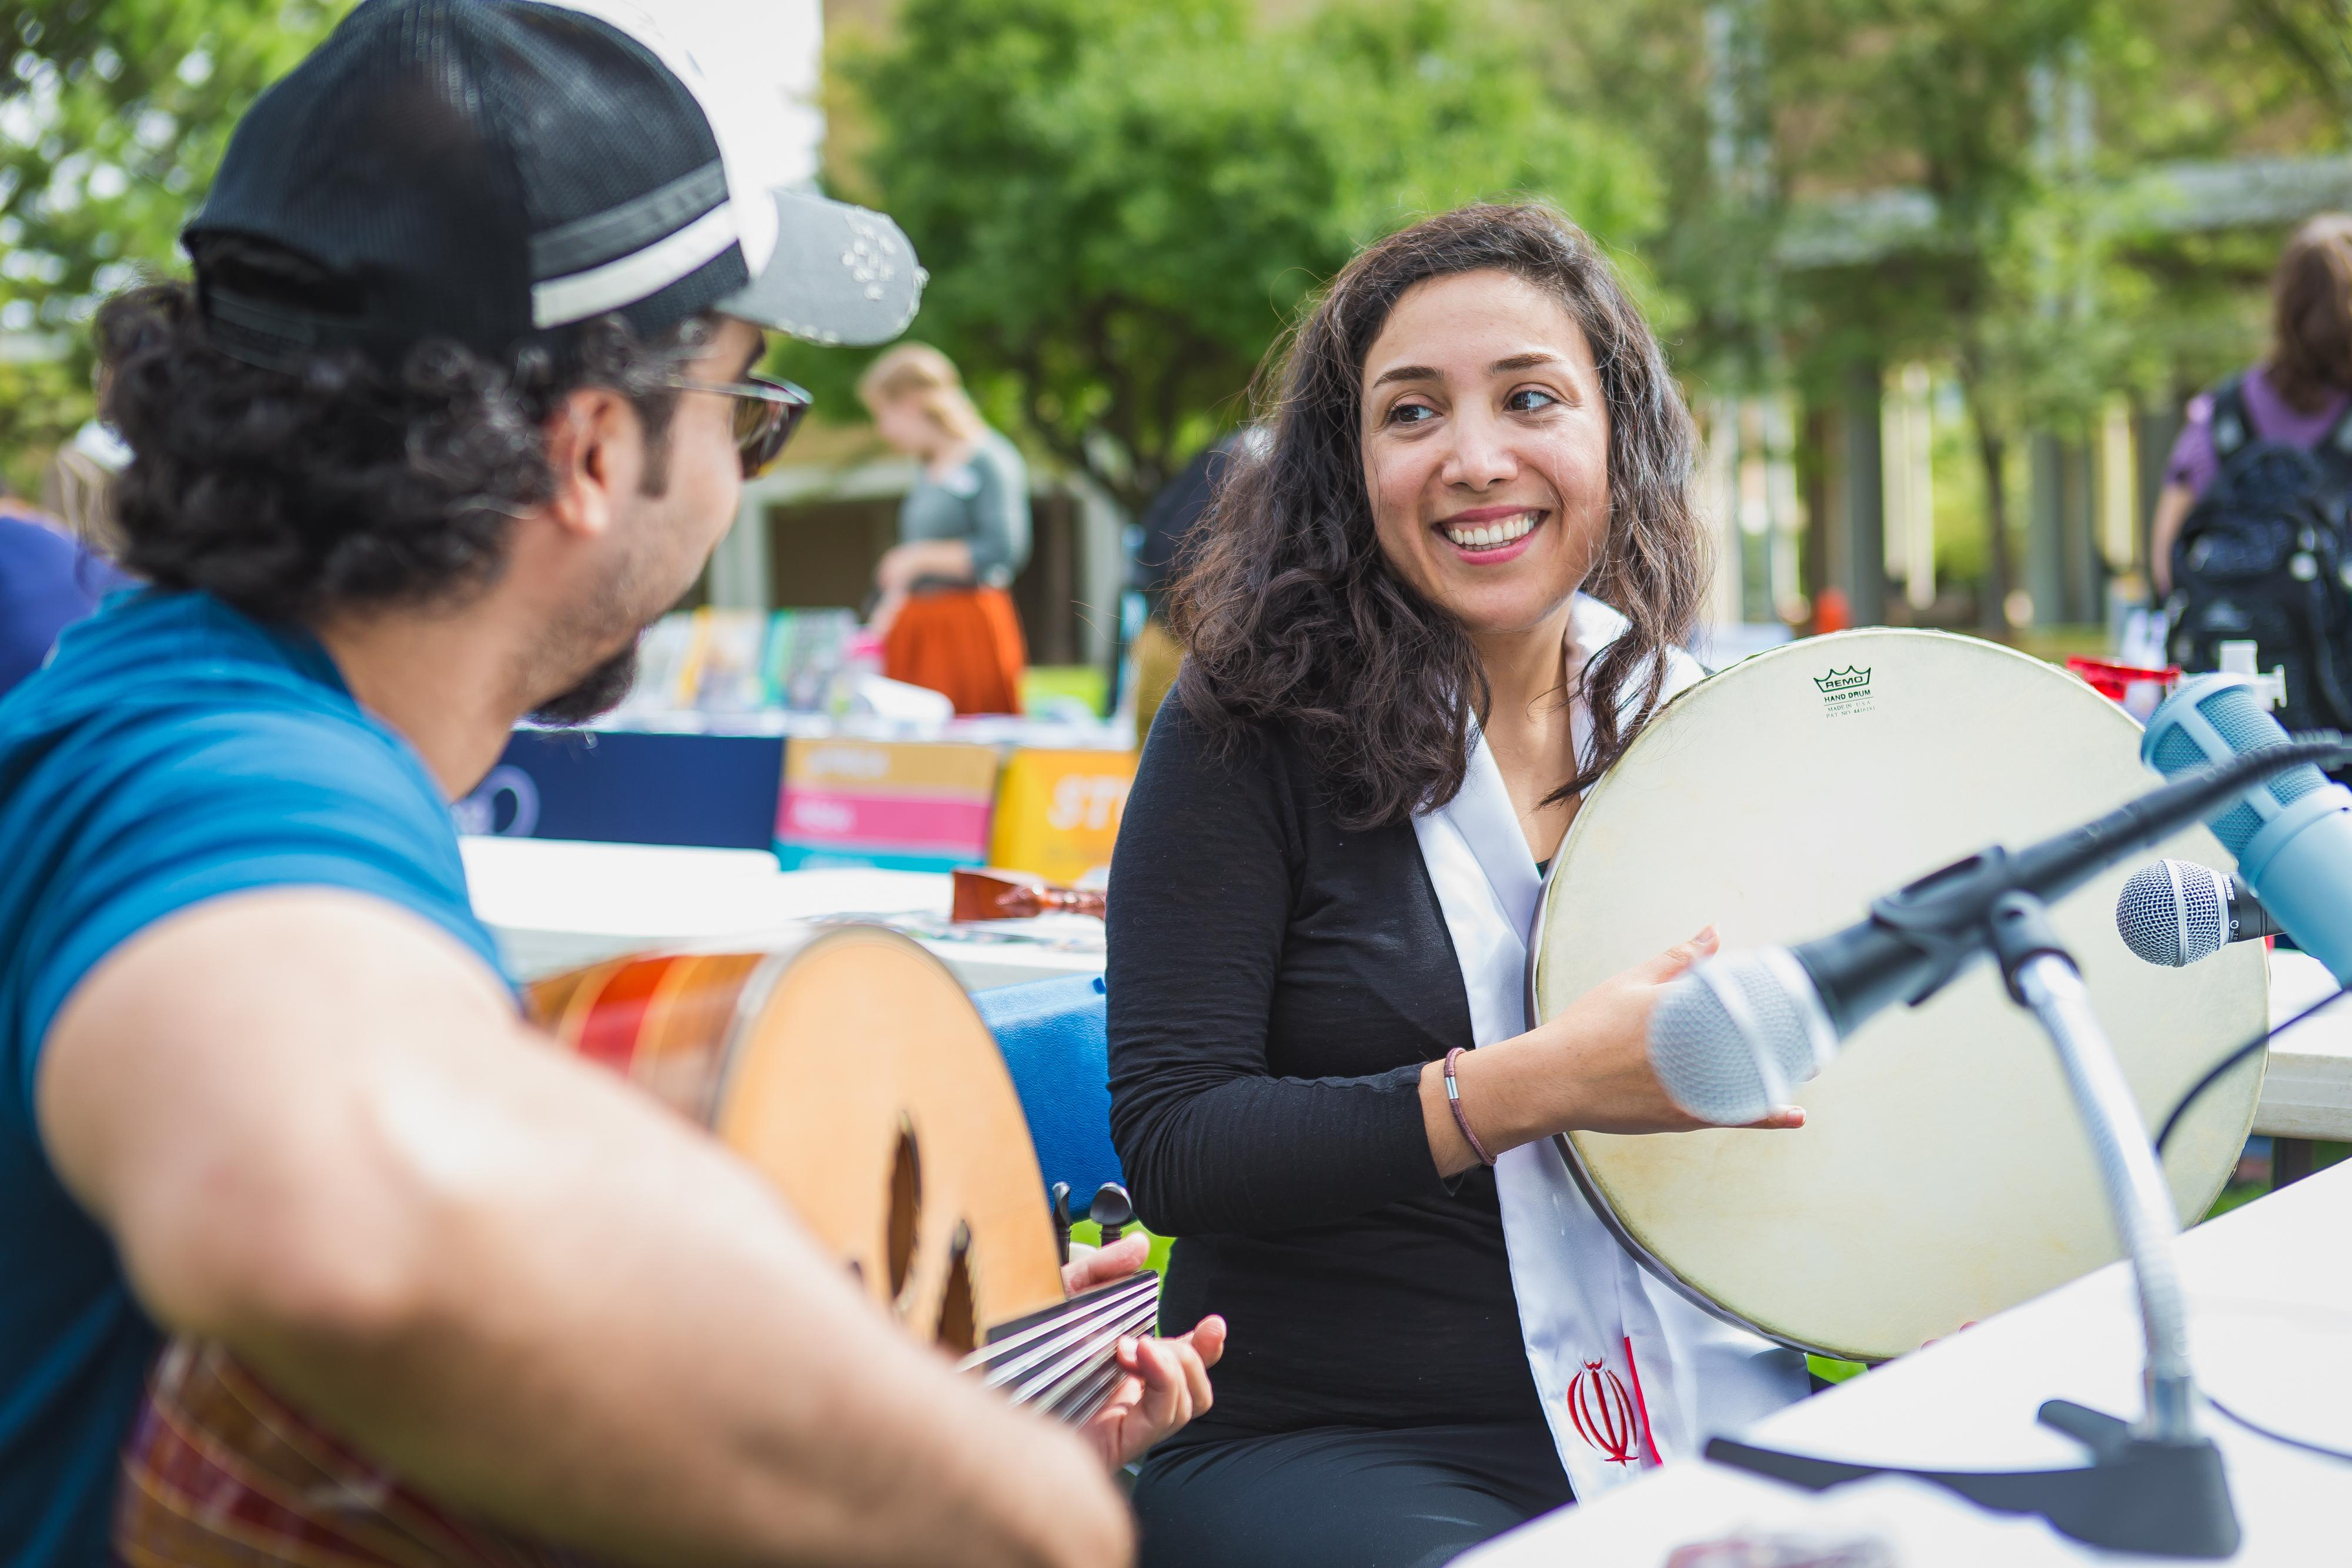 Students playing music at the fair